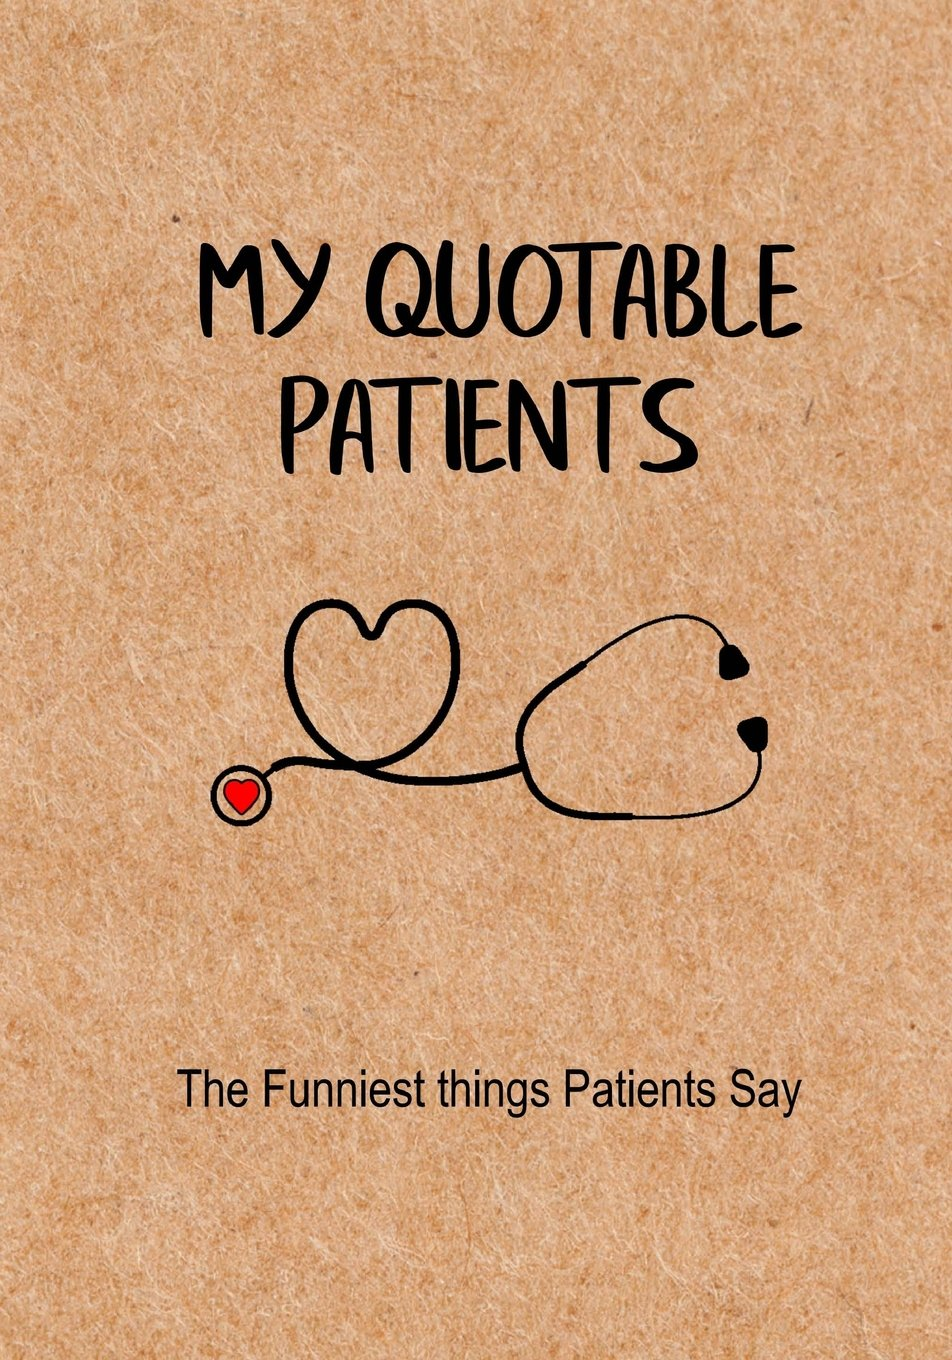 My Quotable Patients - The Funniest Things Patients Say: A Journal to collect Quotes, Memories, and Stories of your Patients, Graduation Gift for Nurses, Doctors or Nurse Practitioner Funny Gift pdf epub